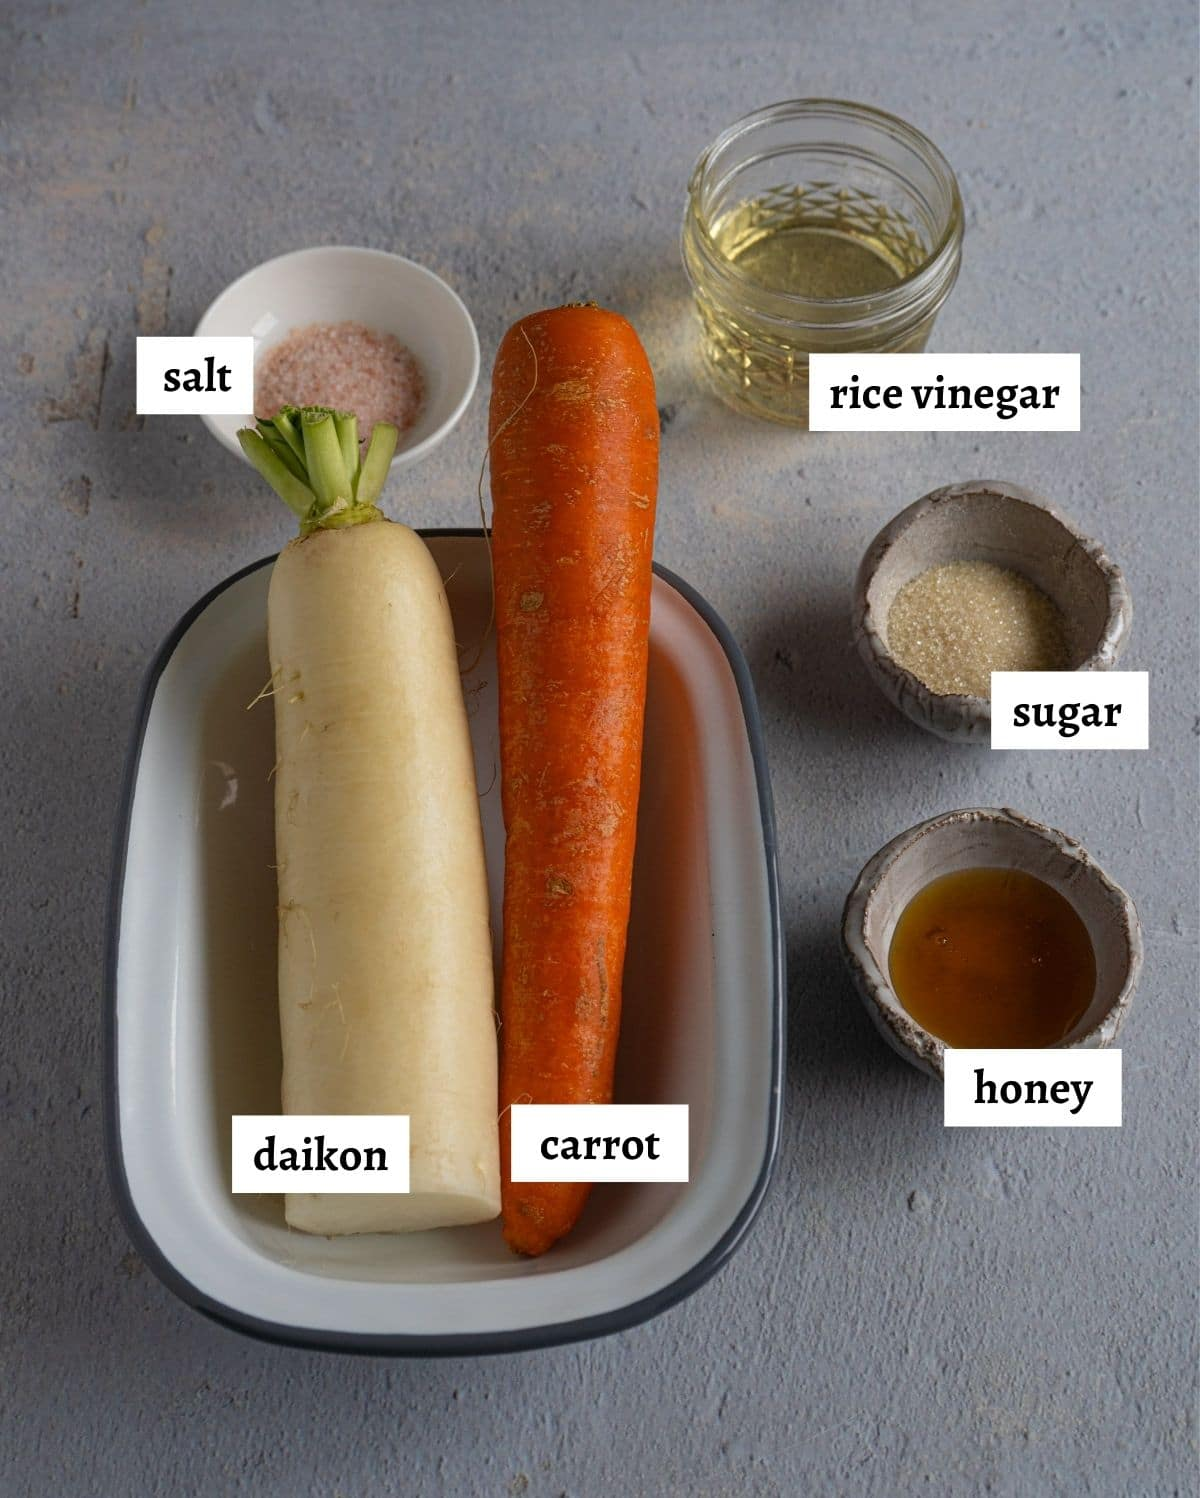 ingredients for making pickled carrots and daikon.